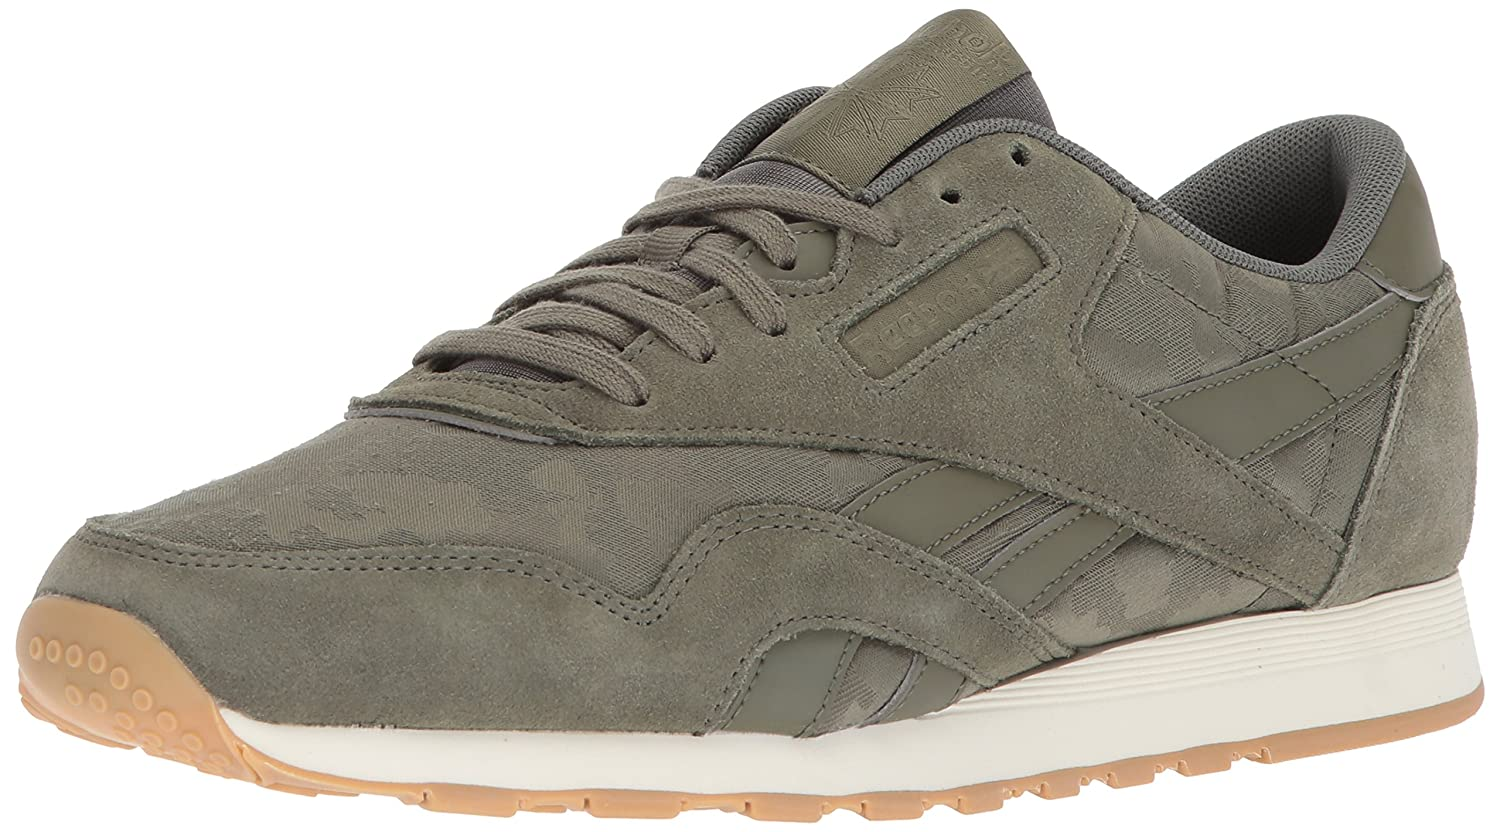 Reebok メンズ CL NYLON SG B072Q3WV24 7.5 D(M) US|Hunter Green/Chalk Hunter Green/Chalk 7.5 D(M) US